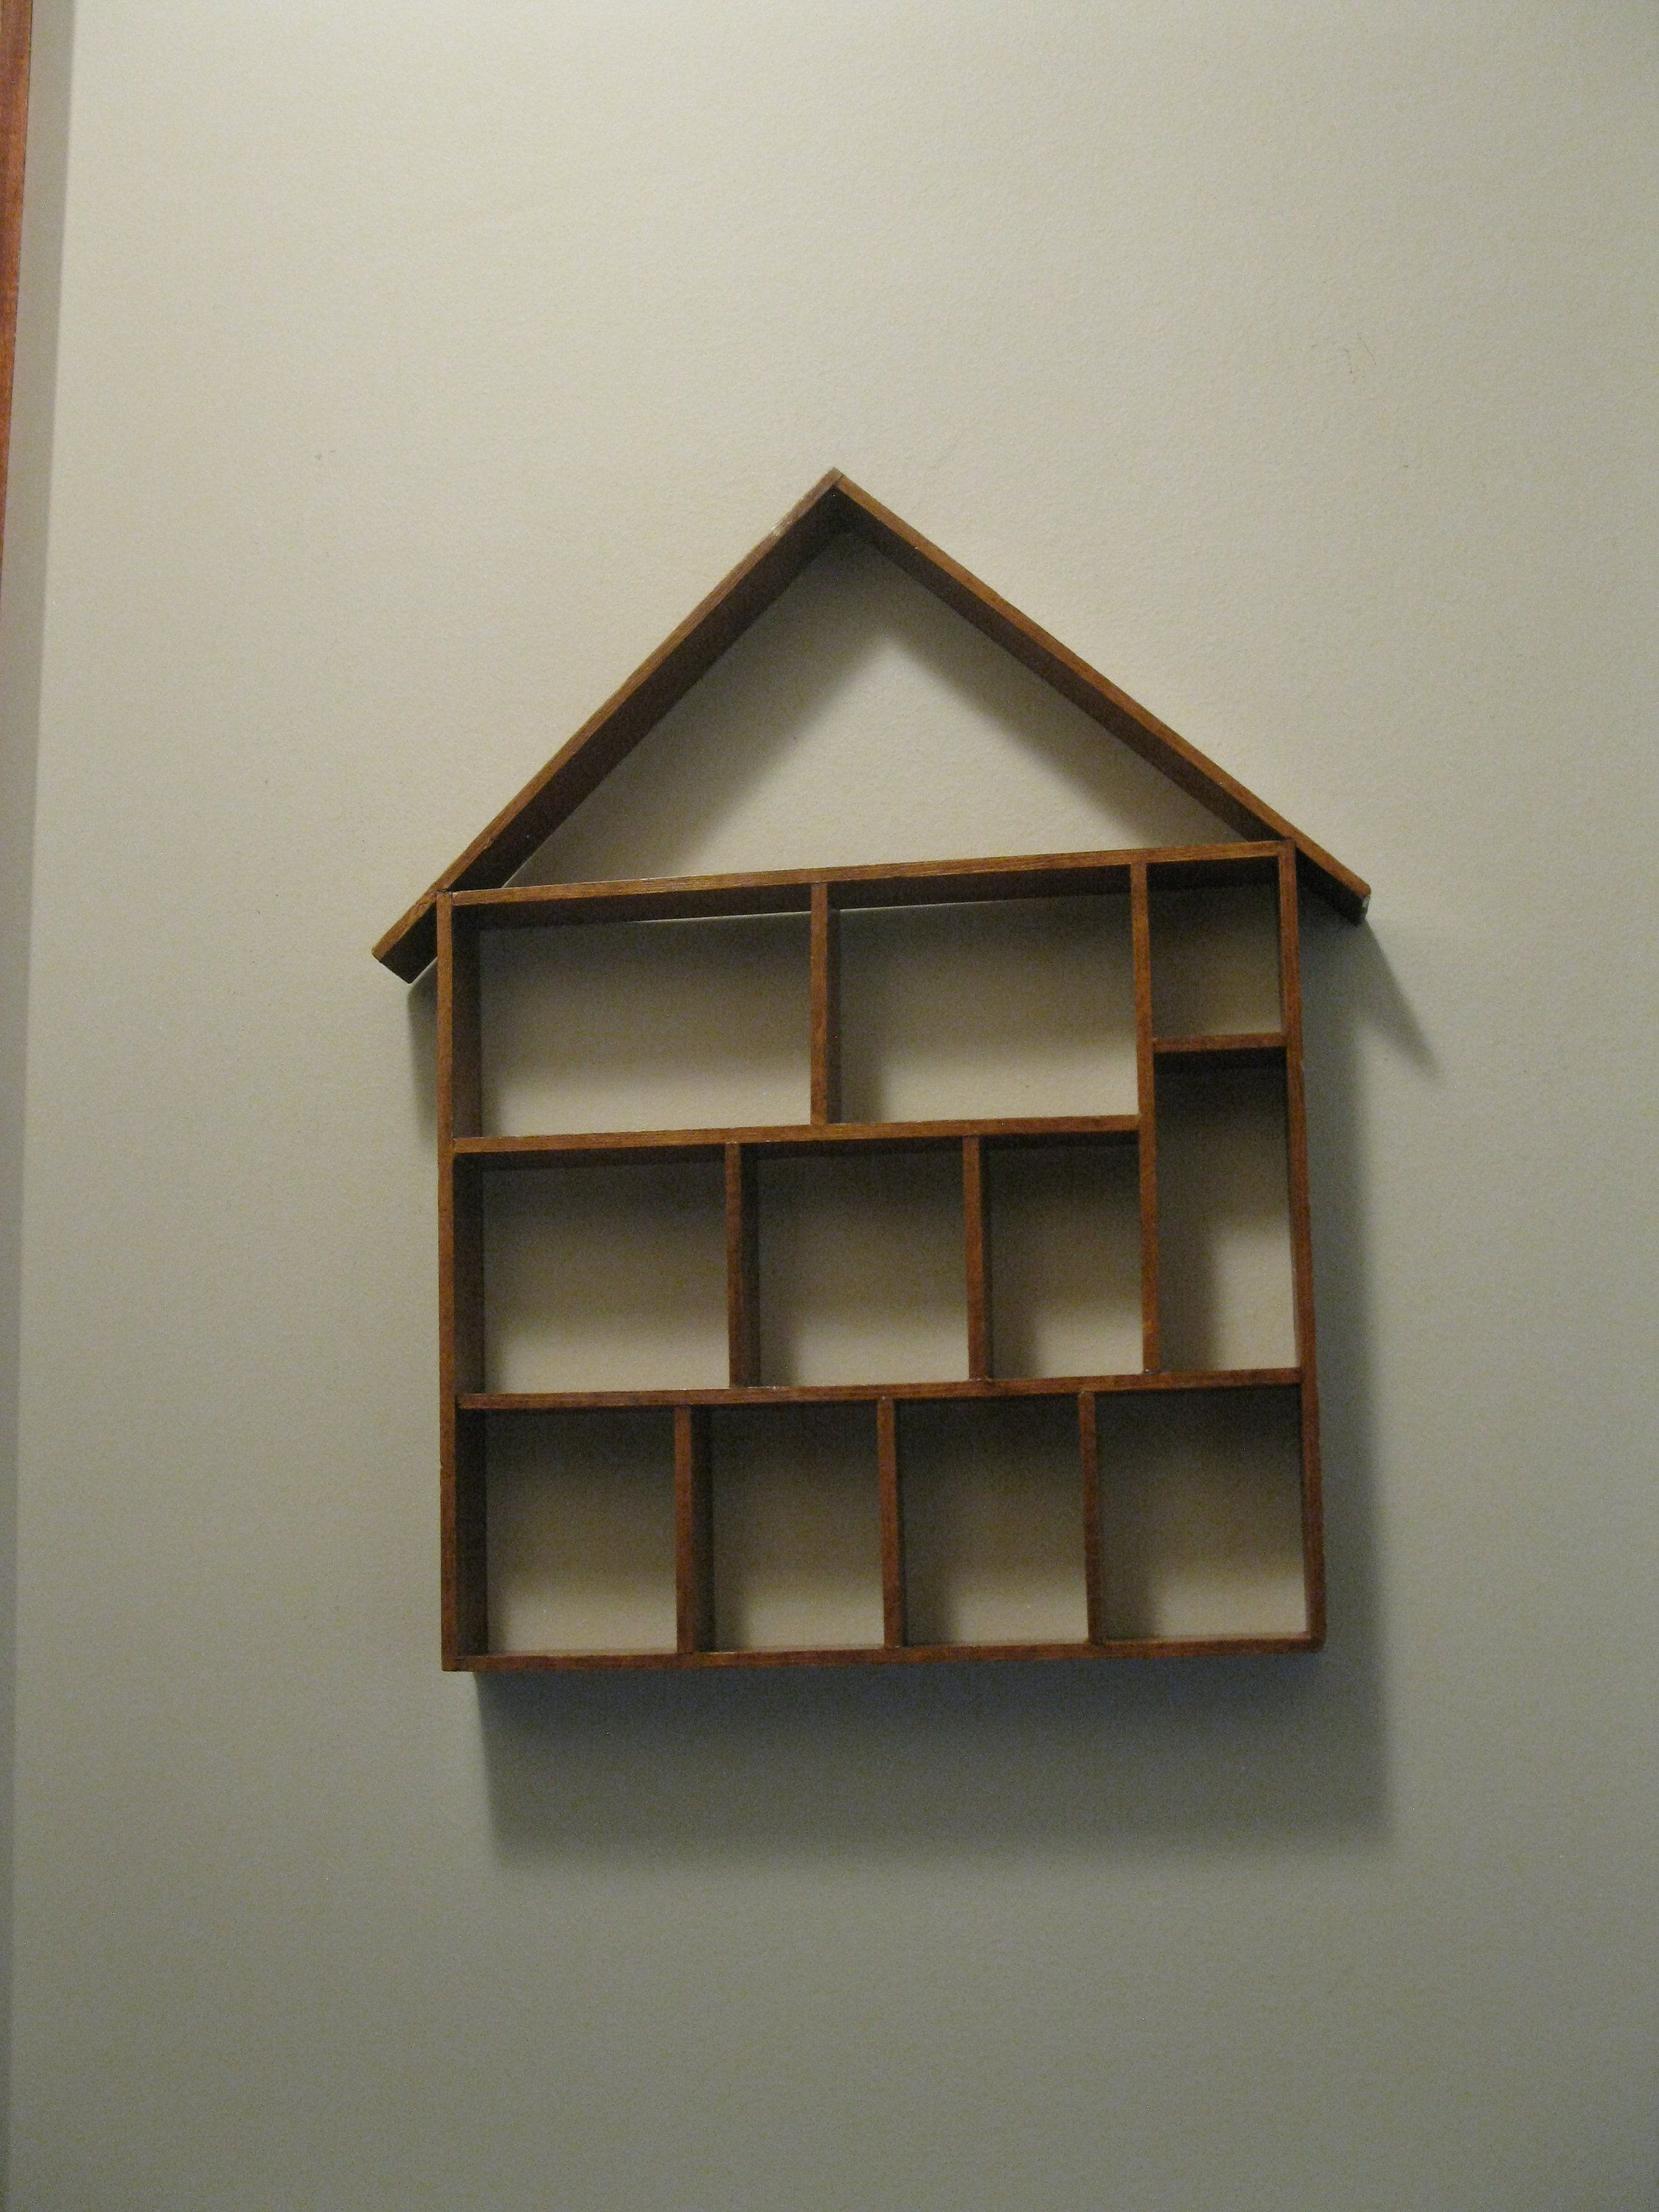 Wood Shadow Box House Shaped 15 1 2 X 13 Knick Knack Trinket Display Case Wall Curio Miniatures Collections Wood Shadow Box Box Houses Shadow Box